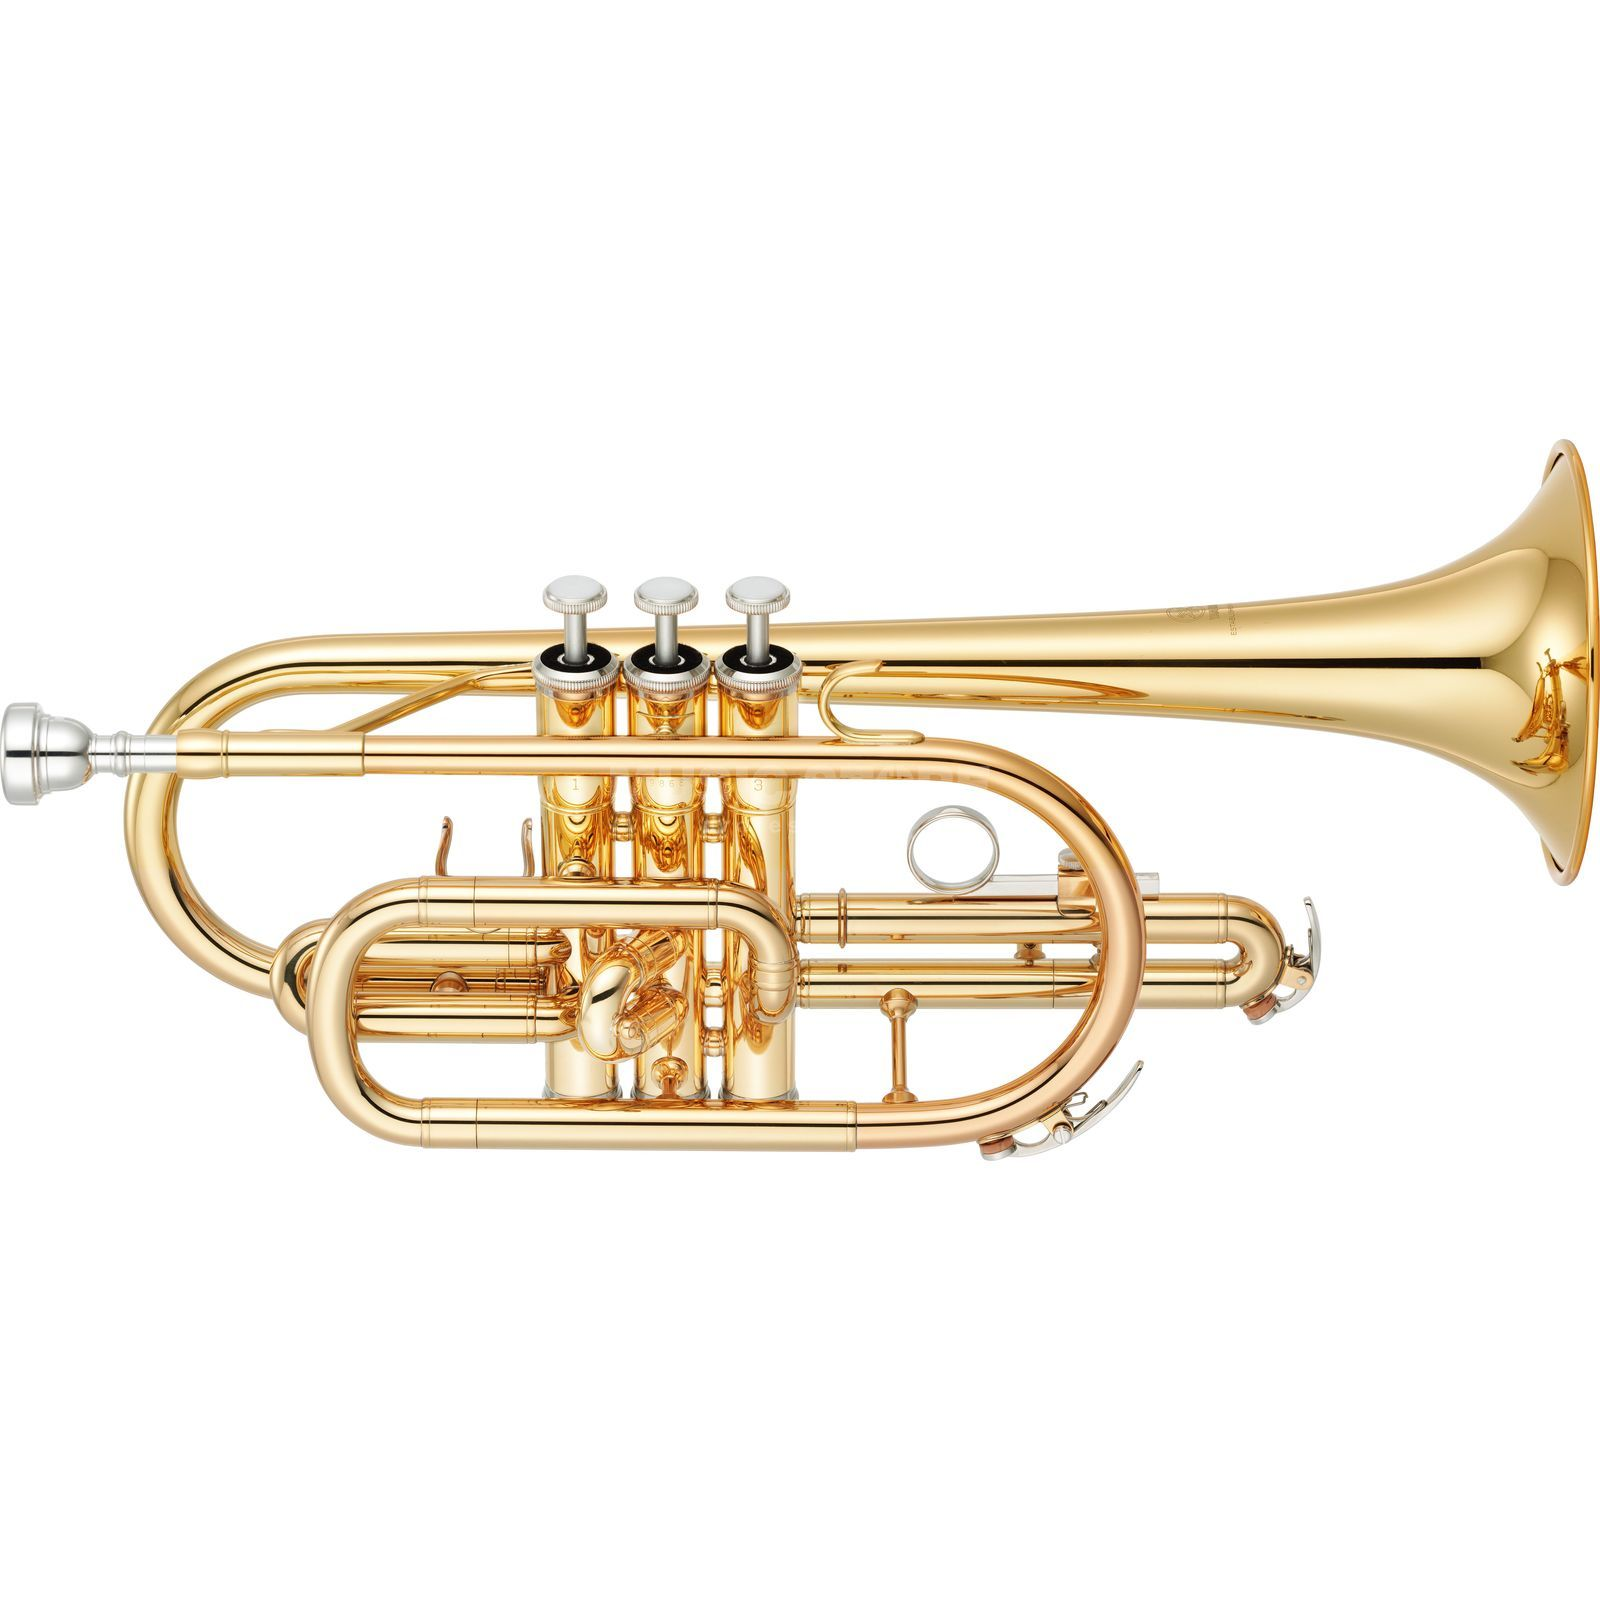 Yamaha YCR-2310 III Bb-Cornet Yellow Brass, Clear Lacquer Изображение товара